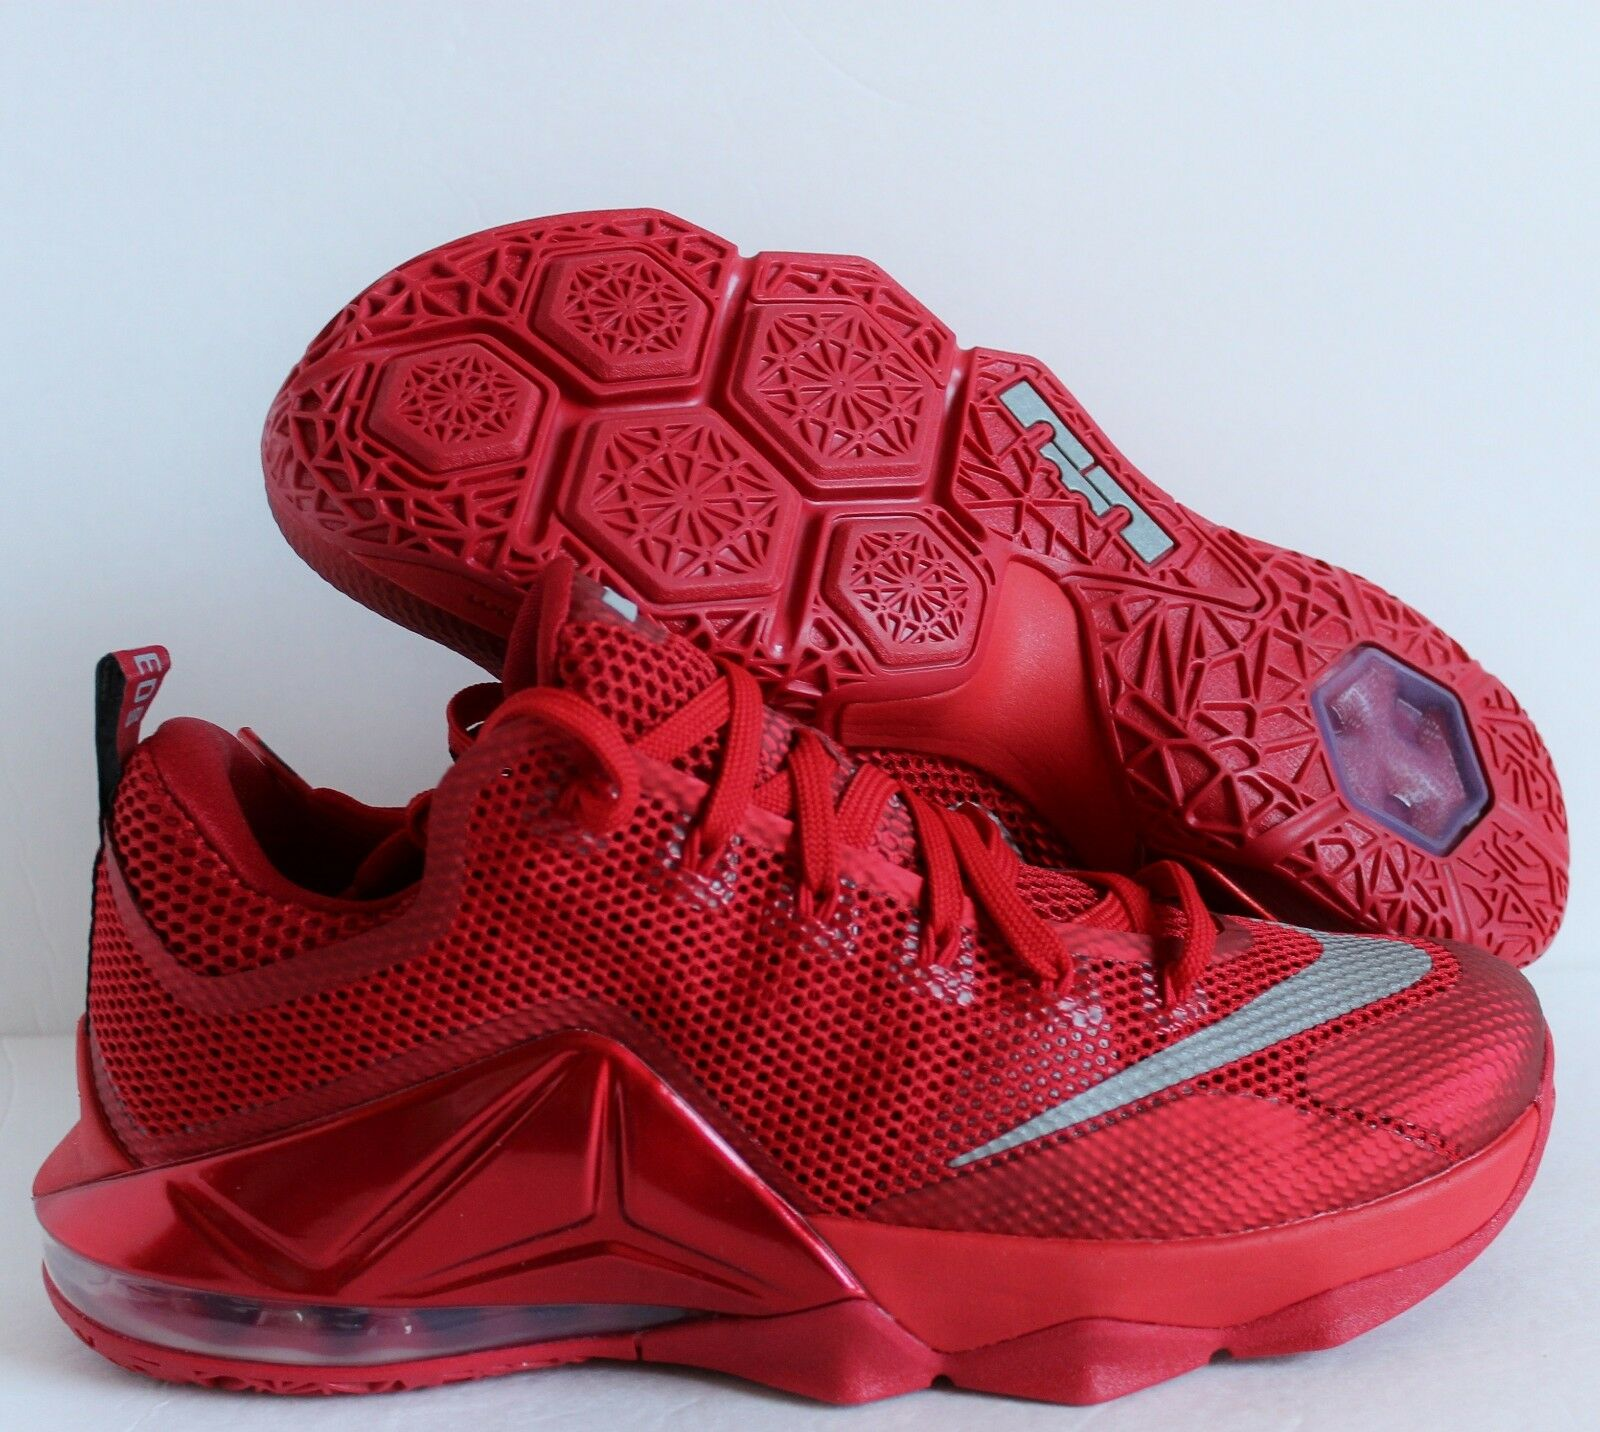 NIKE LEBRON XII LOW UNIVERSITY RED-REFLECTIVE SILVER Price reduction The most popular shoes for men and women